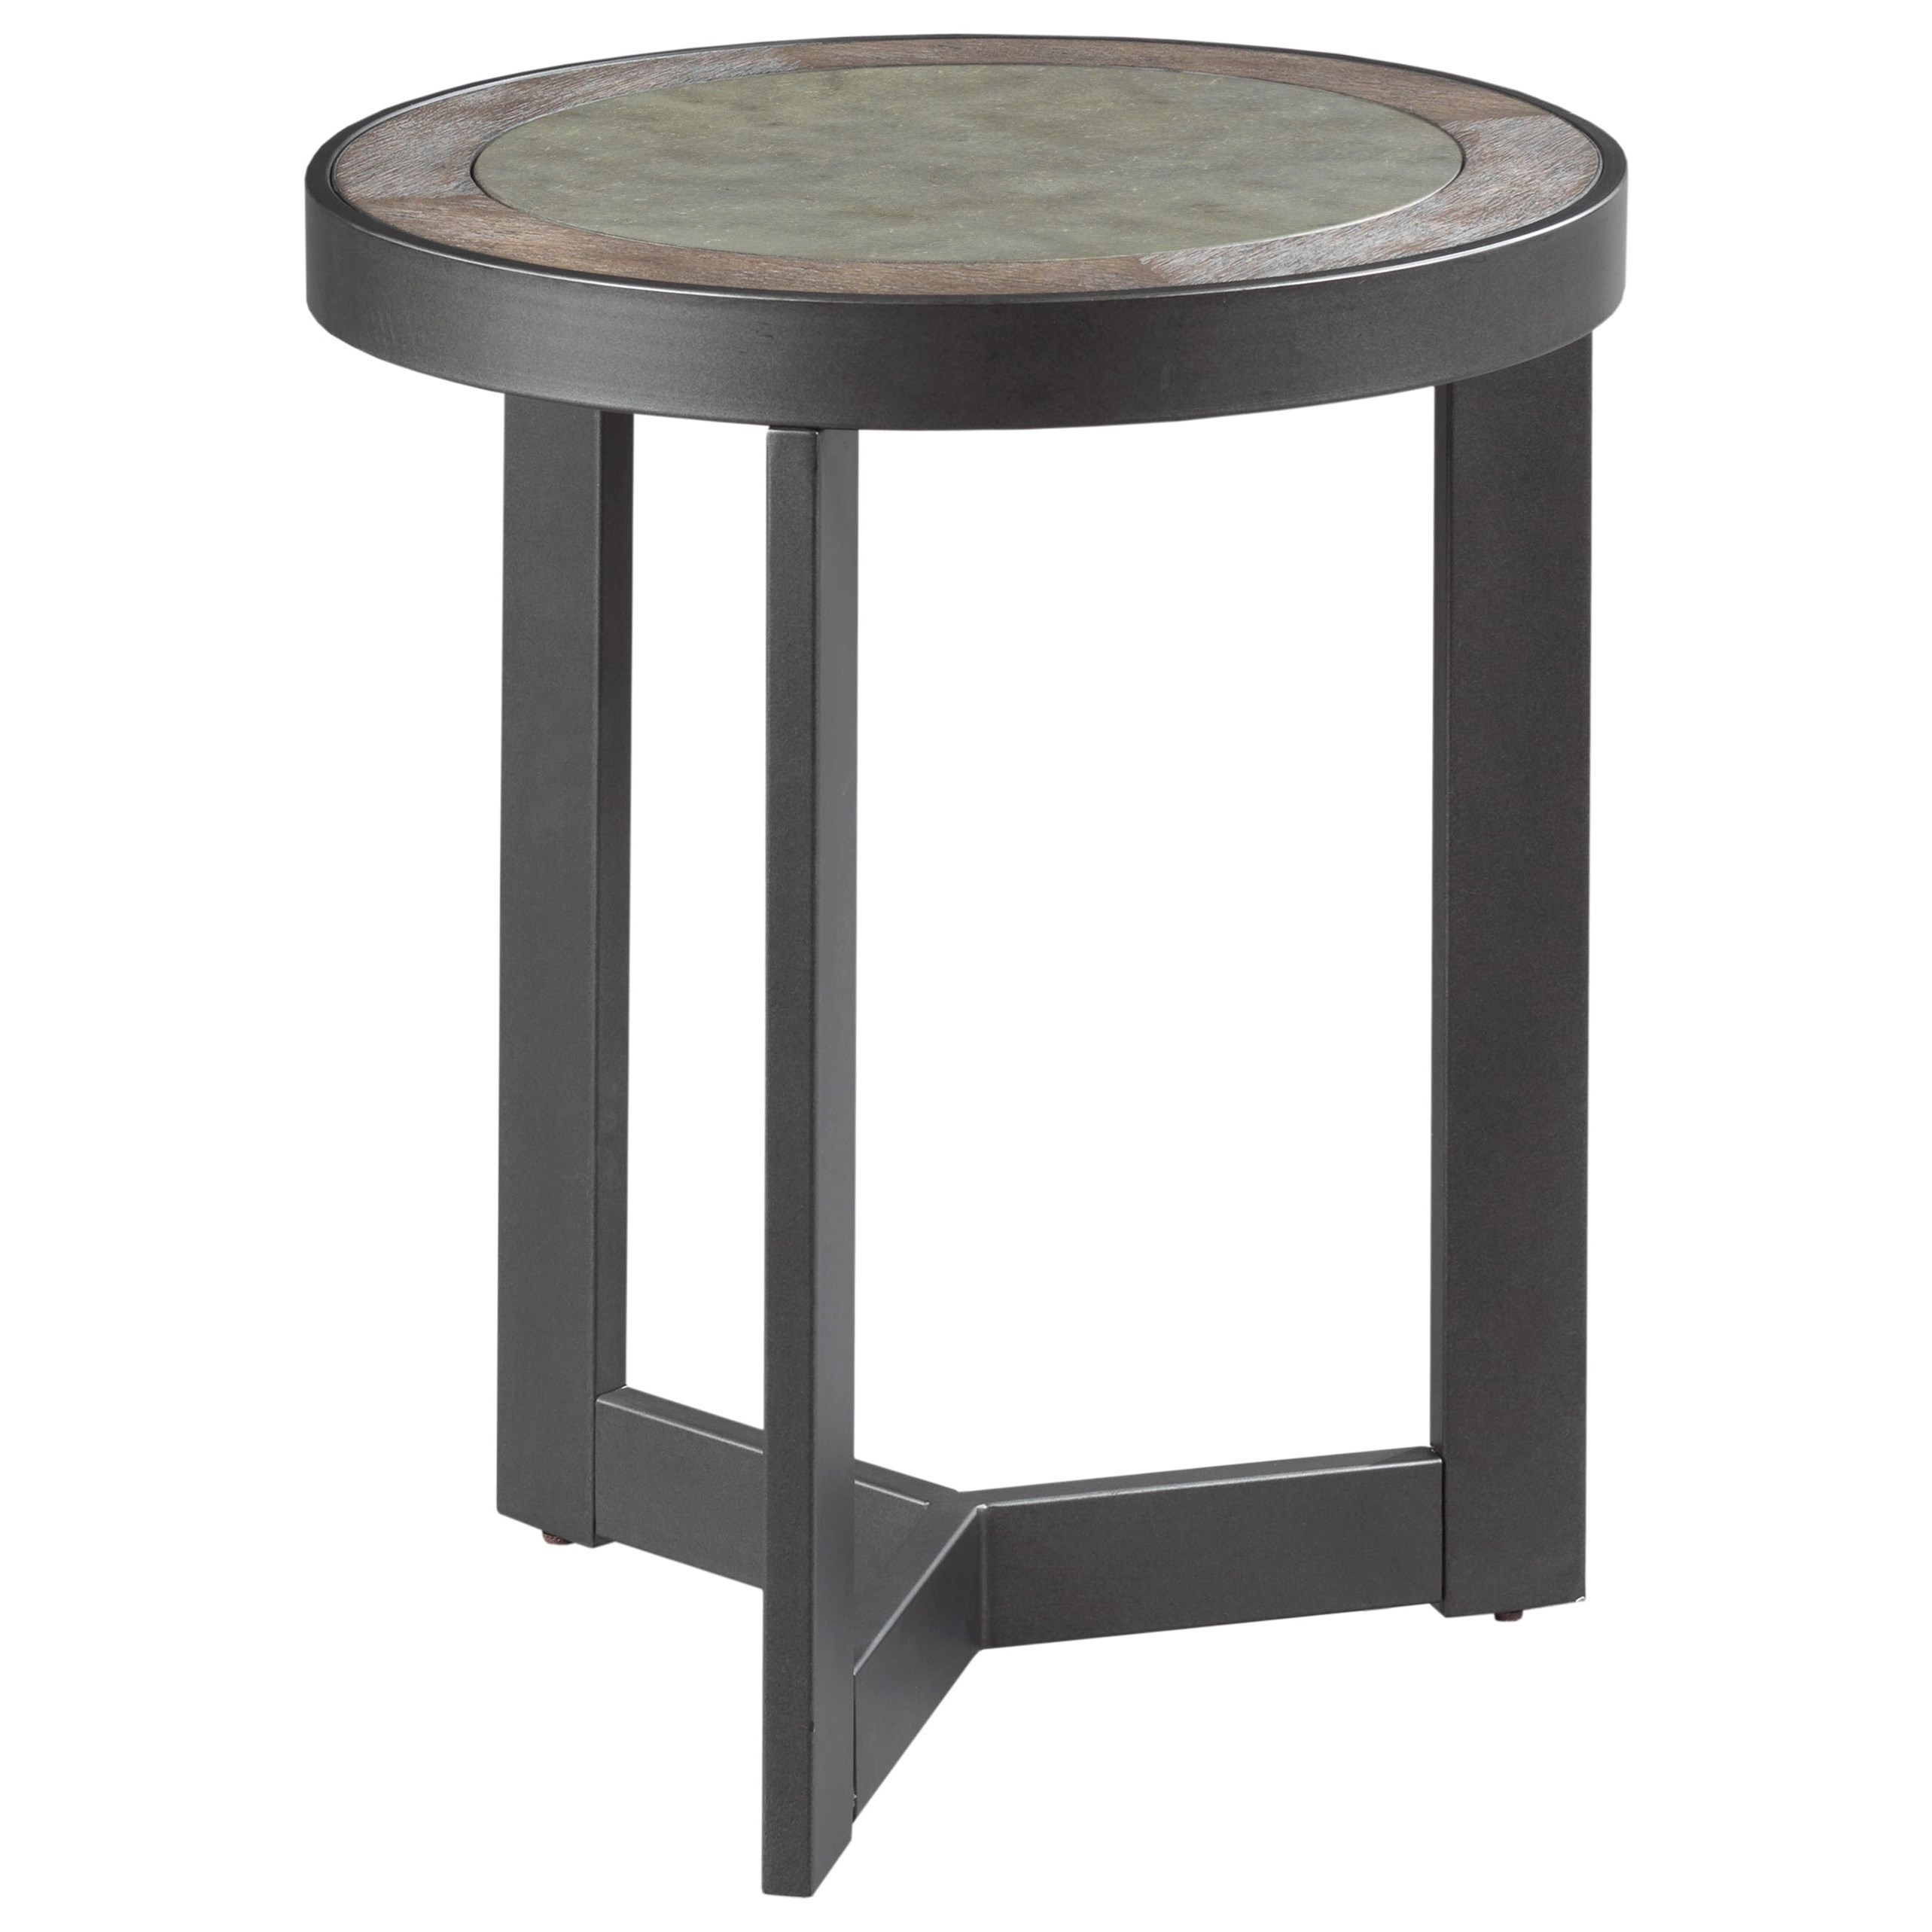 Graystone End Table by Hammary at Red Knot